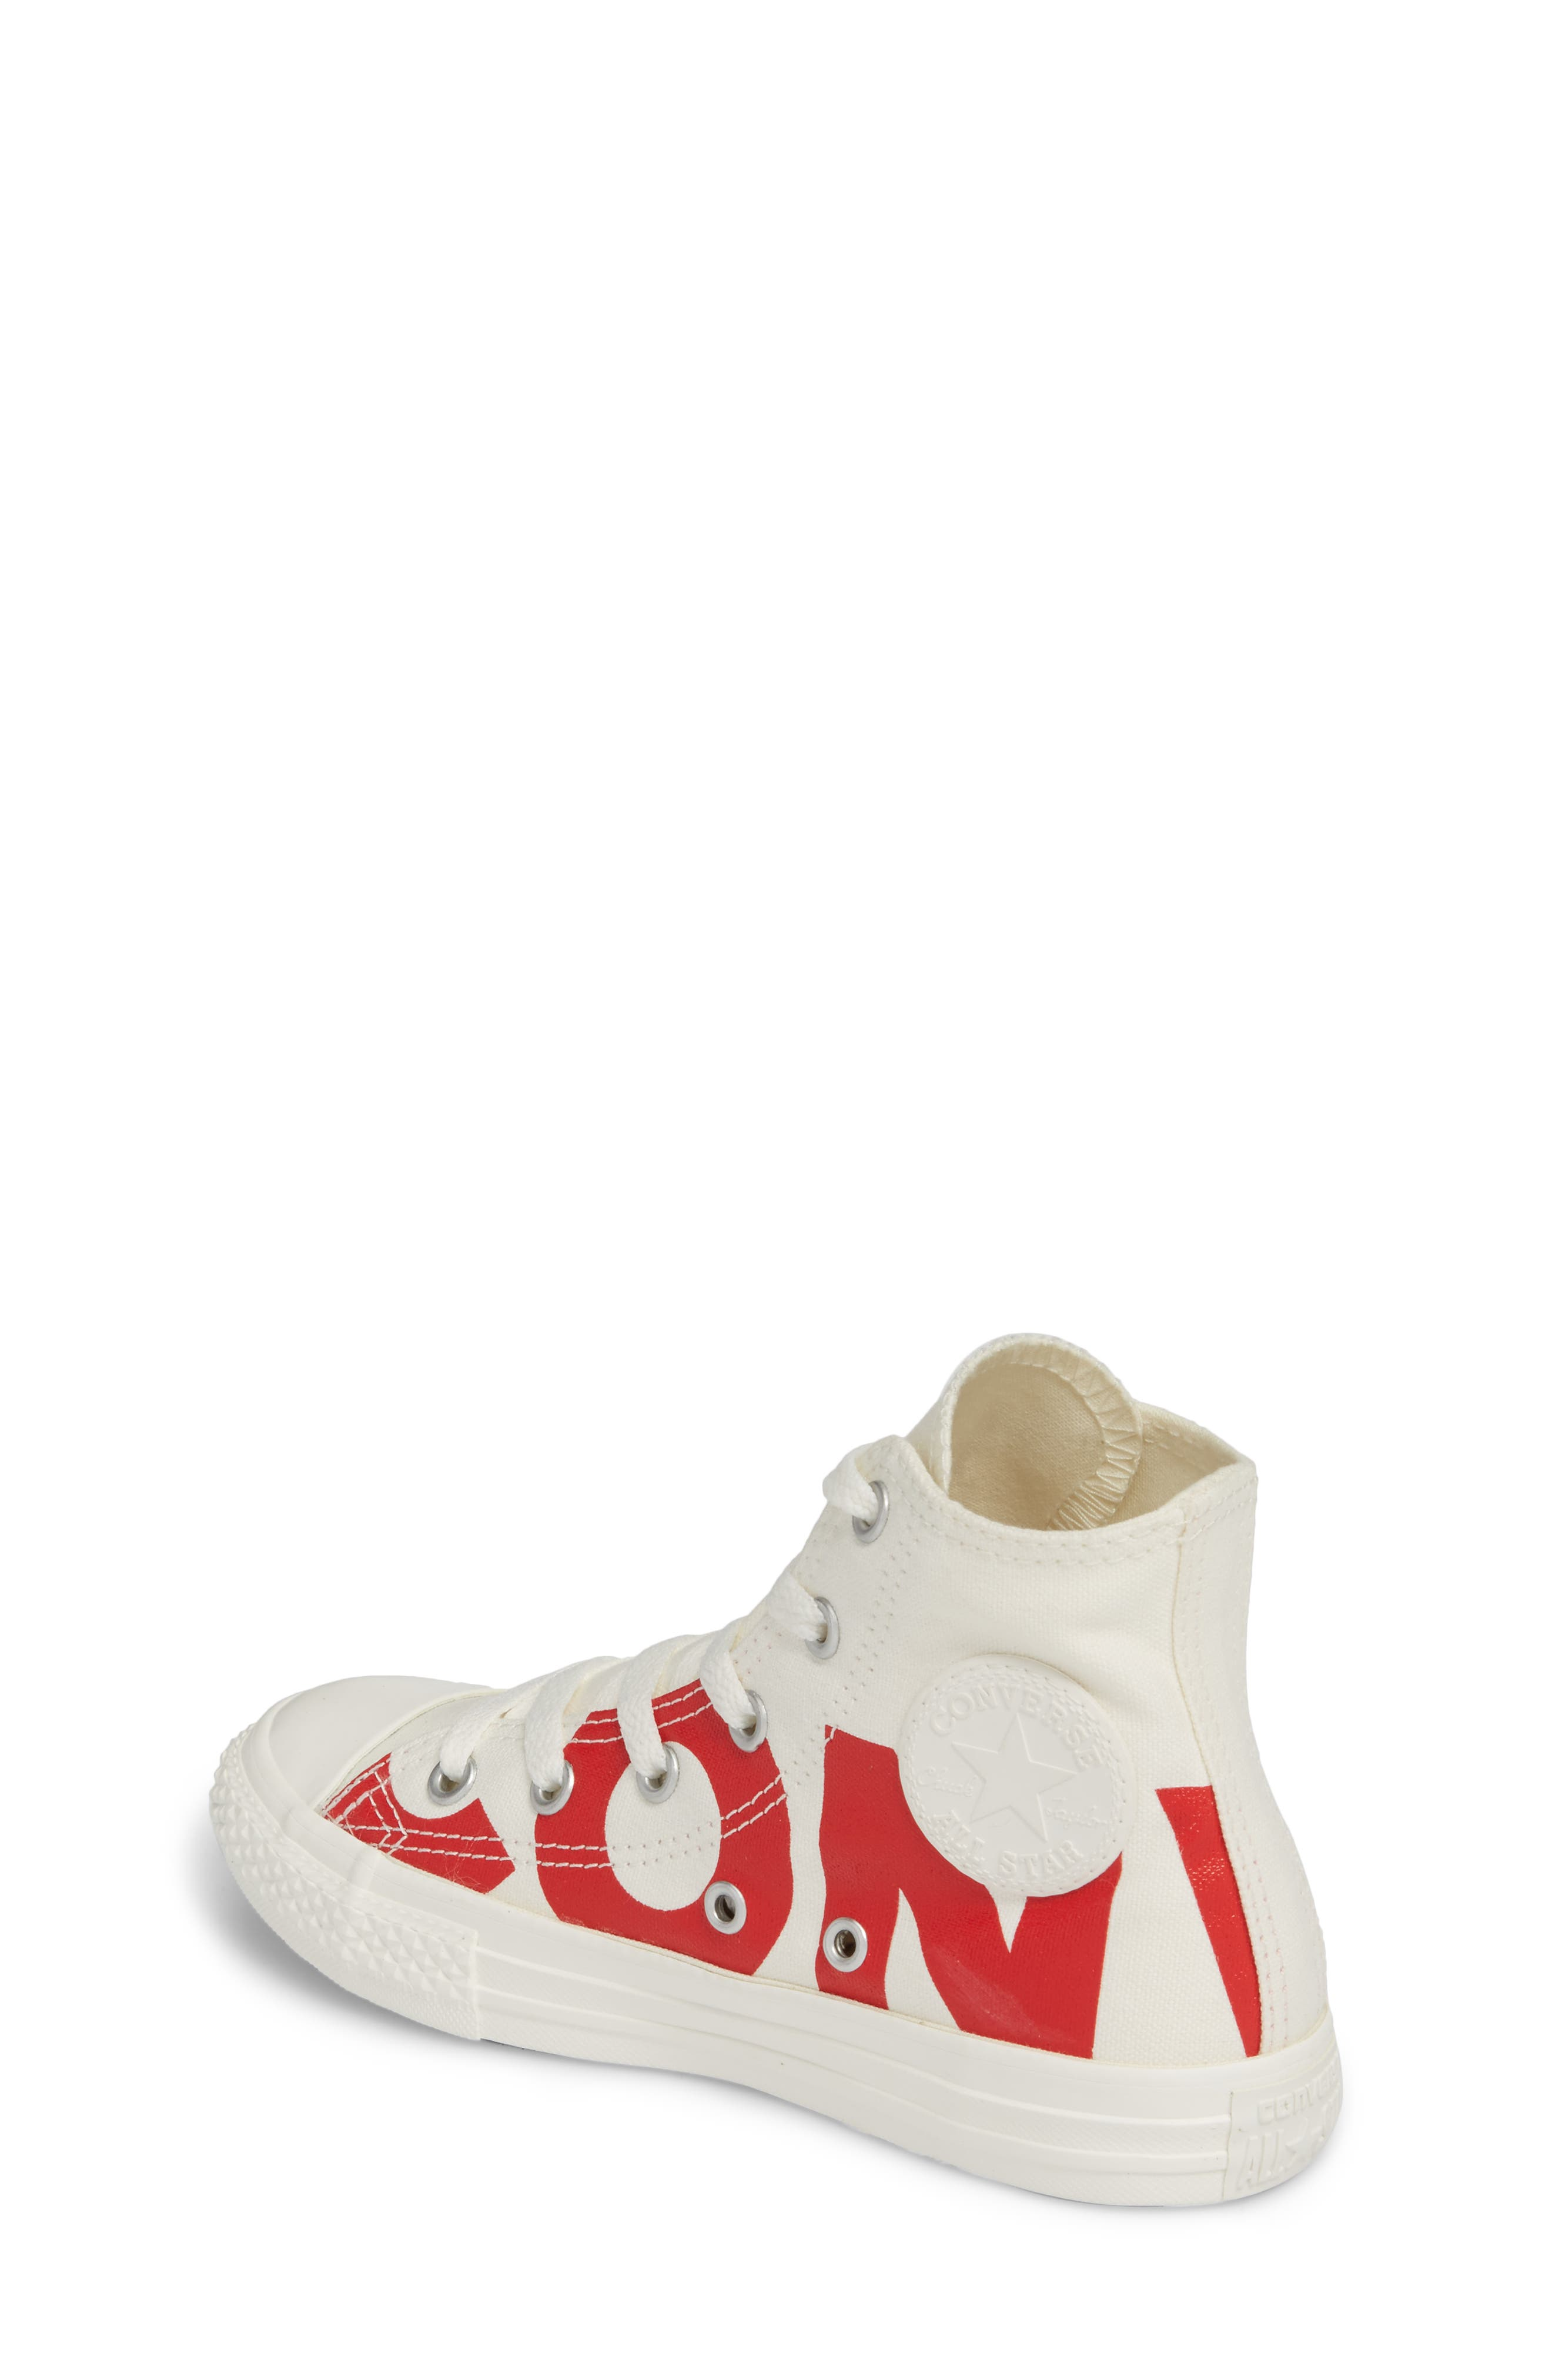 Chuck Taylor<sup>®</sup> All Star<sup>®</sup> Wordmark Hi Sneaker,                             Alternate thumbnail 2, color,                             Enamel Red